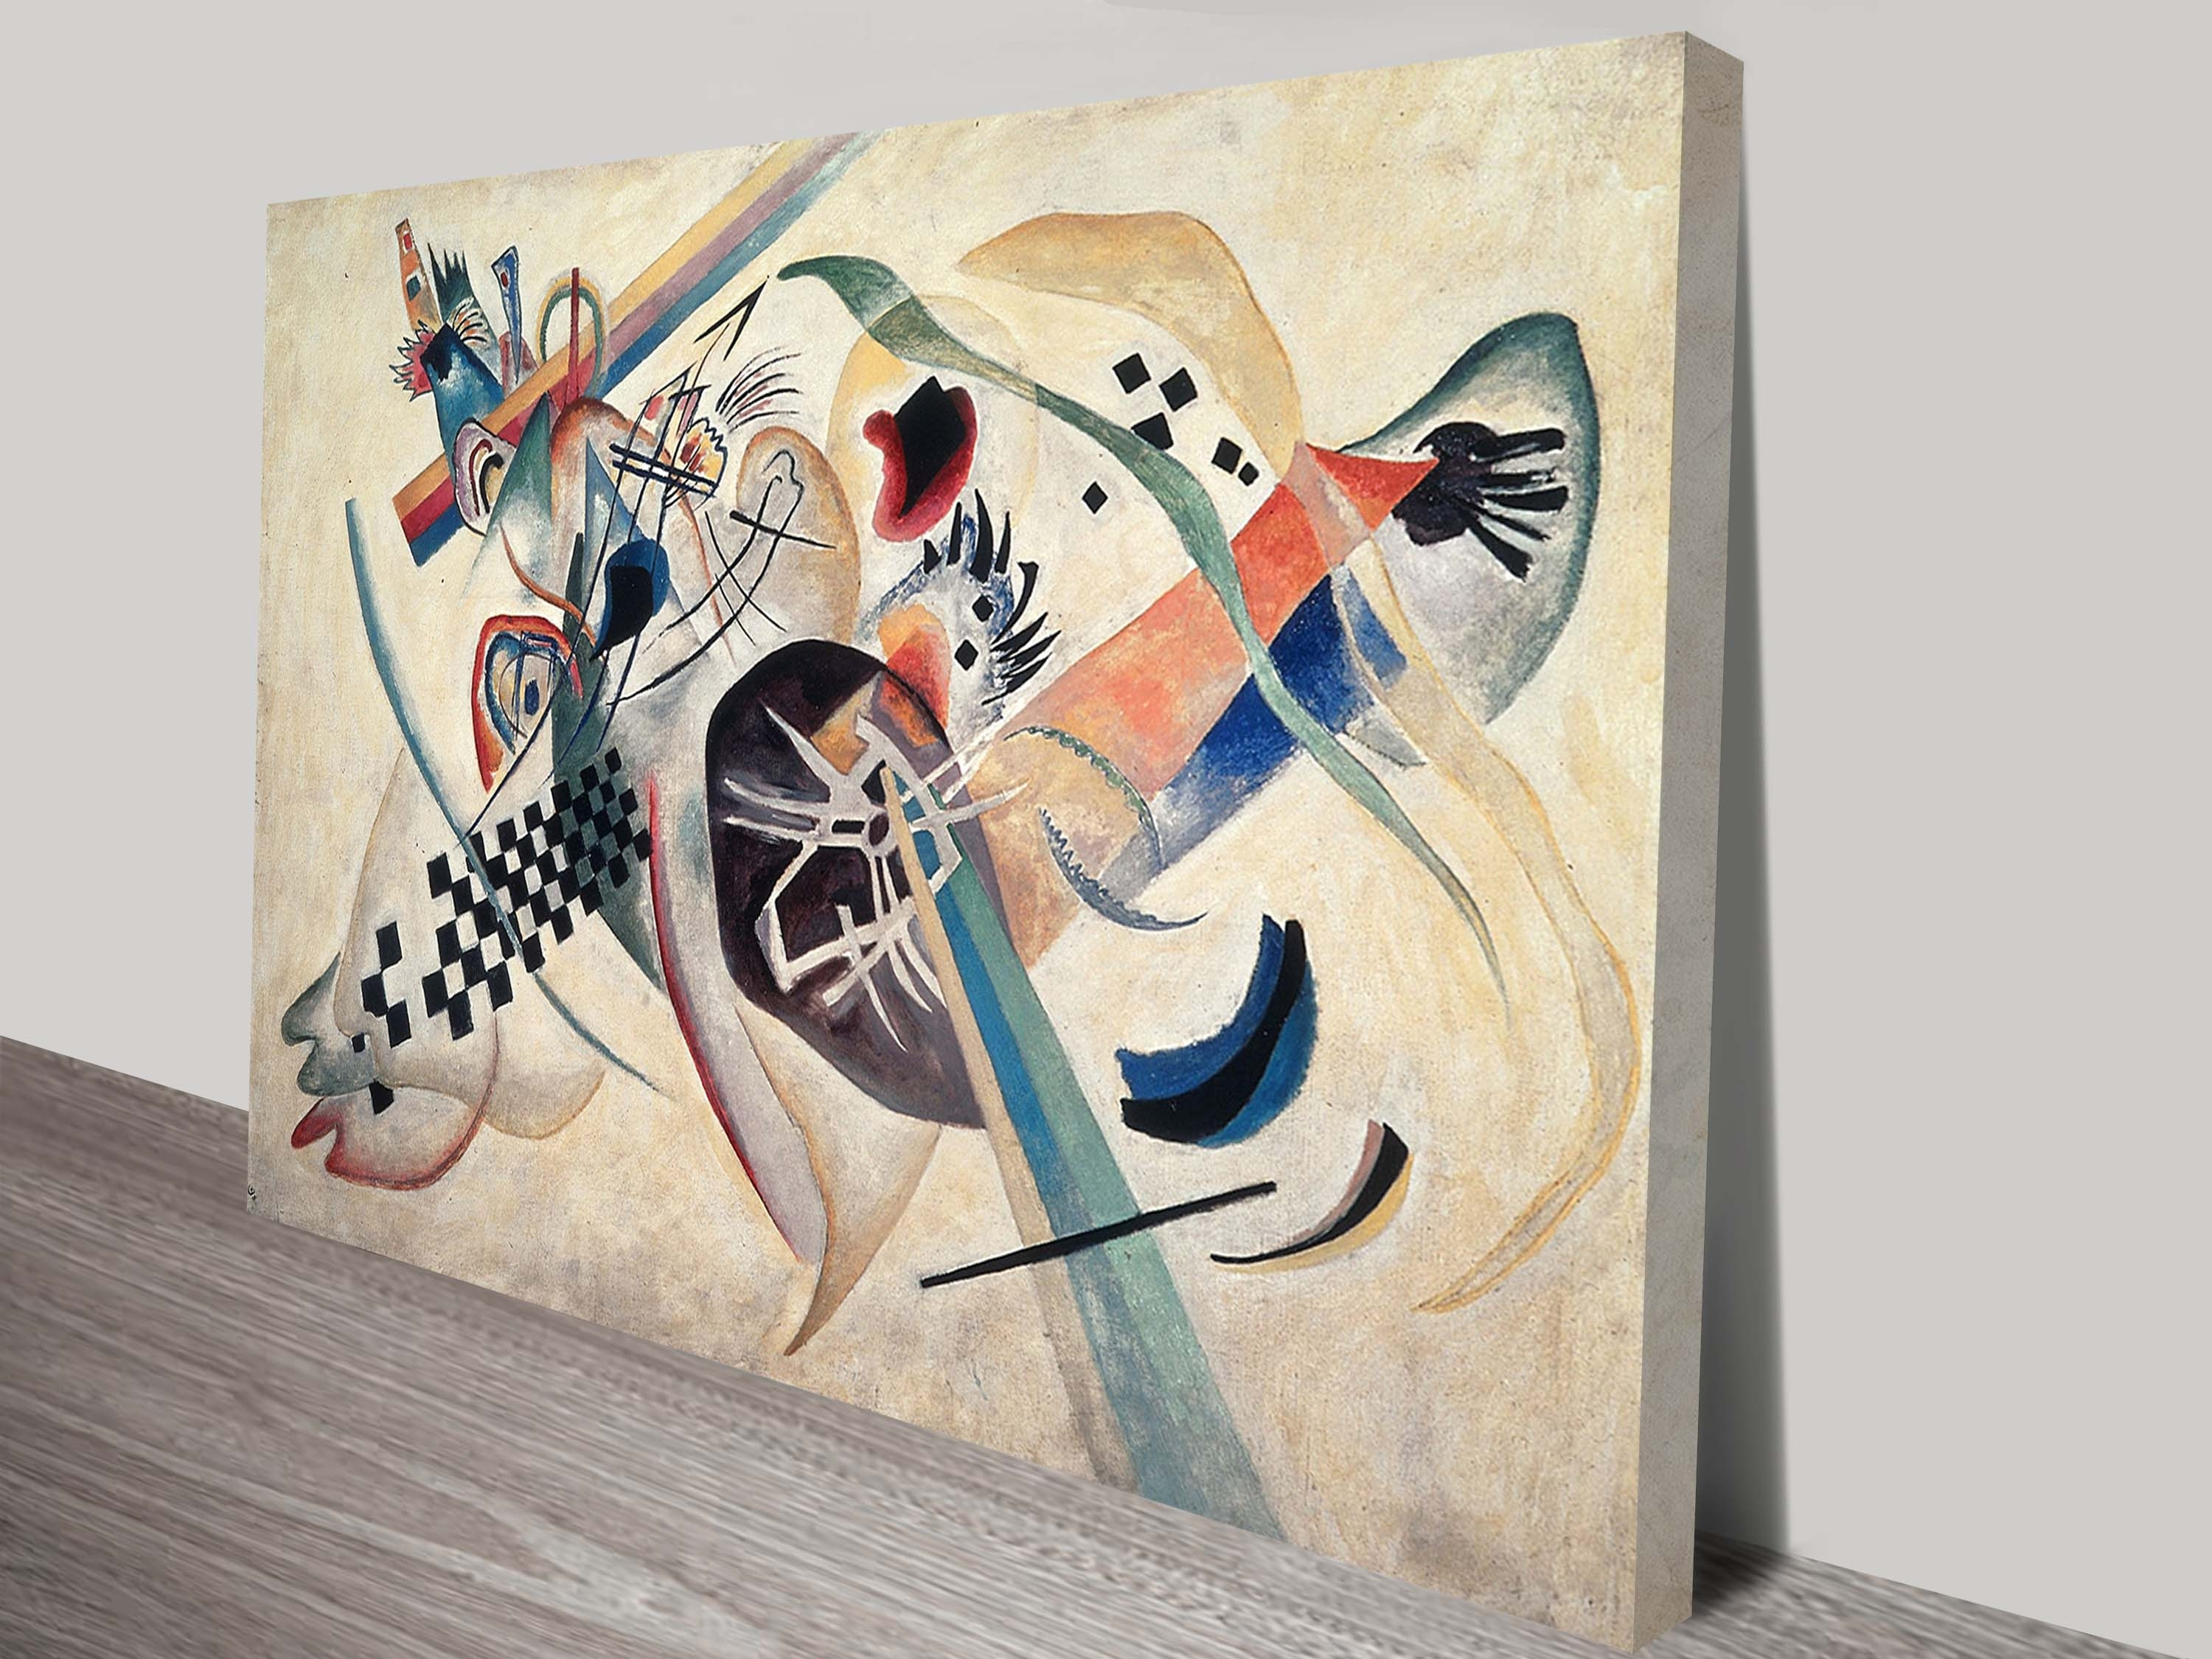 Wassily Kandinsky Wall Art Print On Canvas Intended For Most Up To Date Melbourne Abstract Wall Art (View 17 of 20)